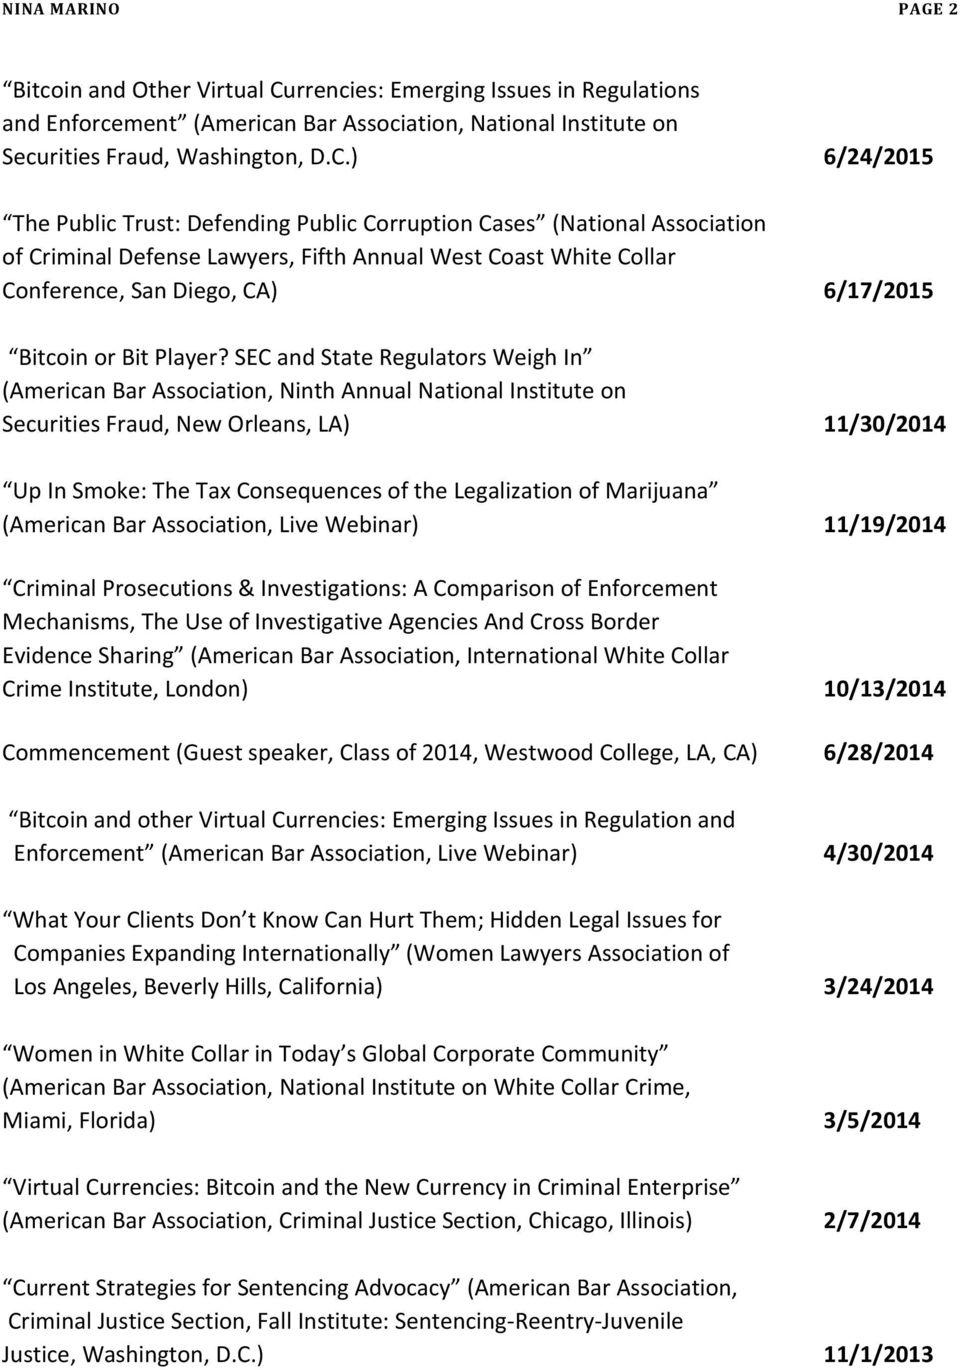 ) 6/24/2015 The Public Trust: Defending Public Corruption Cases (National Association of Criminal Defense Lawyers, Fifth Annual West Coast White Collar Conference, San Diego, CA) 6/17/2015 Bitcoin or